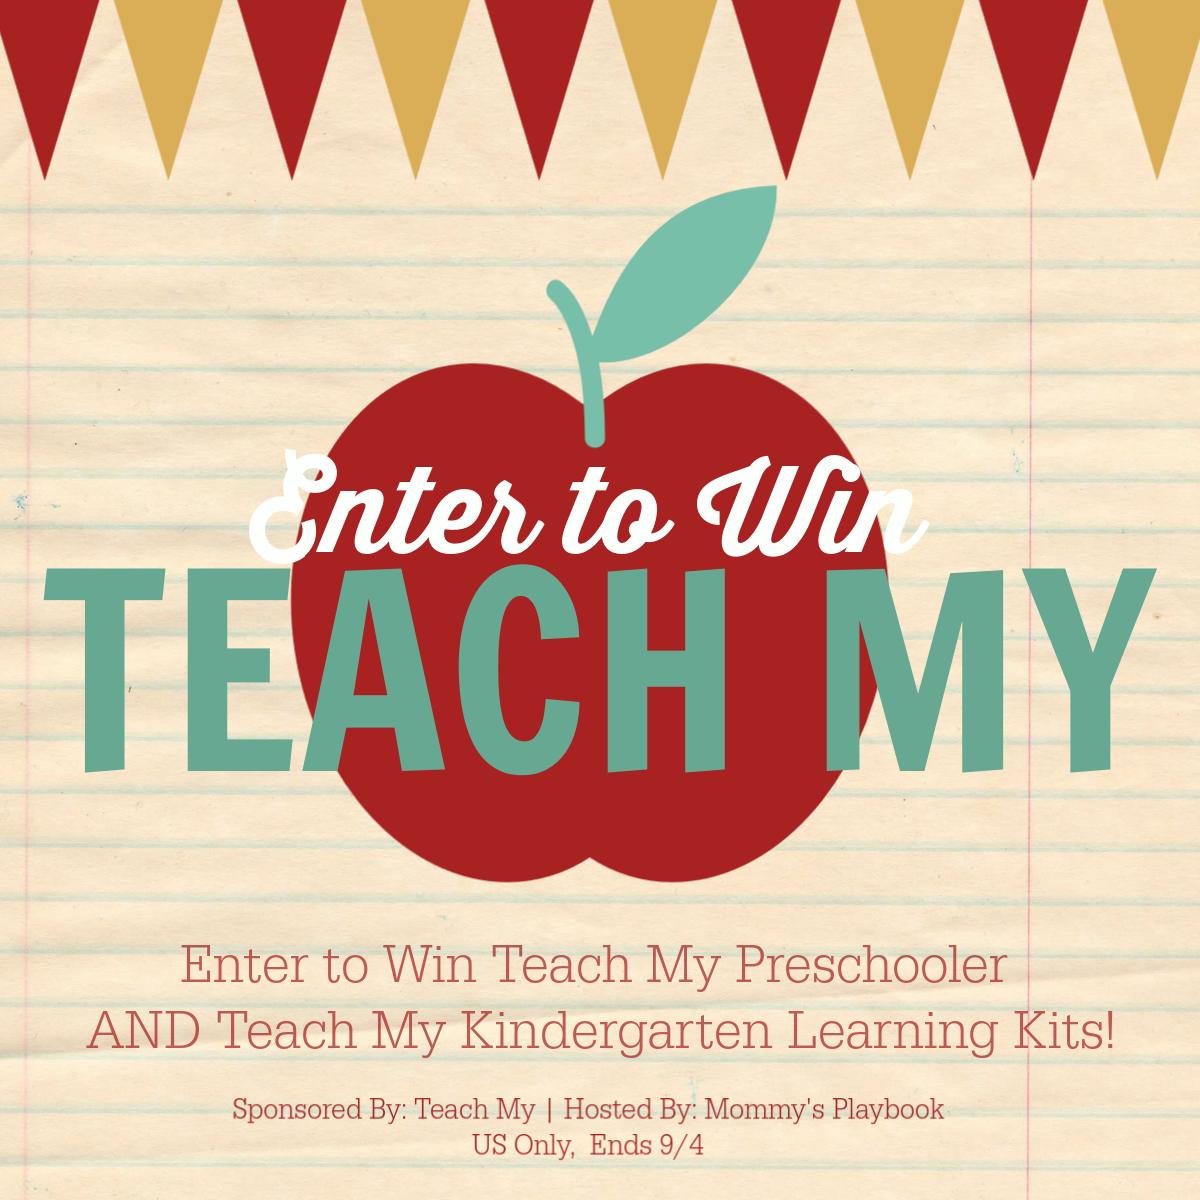 Teach My Back to School 2018 Giveaway Event! #TeachMyBTS2018